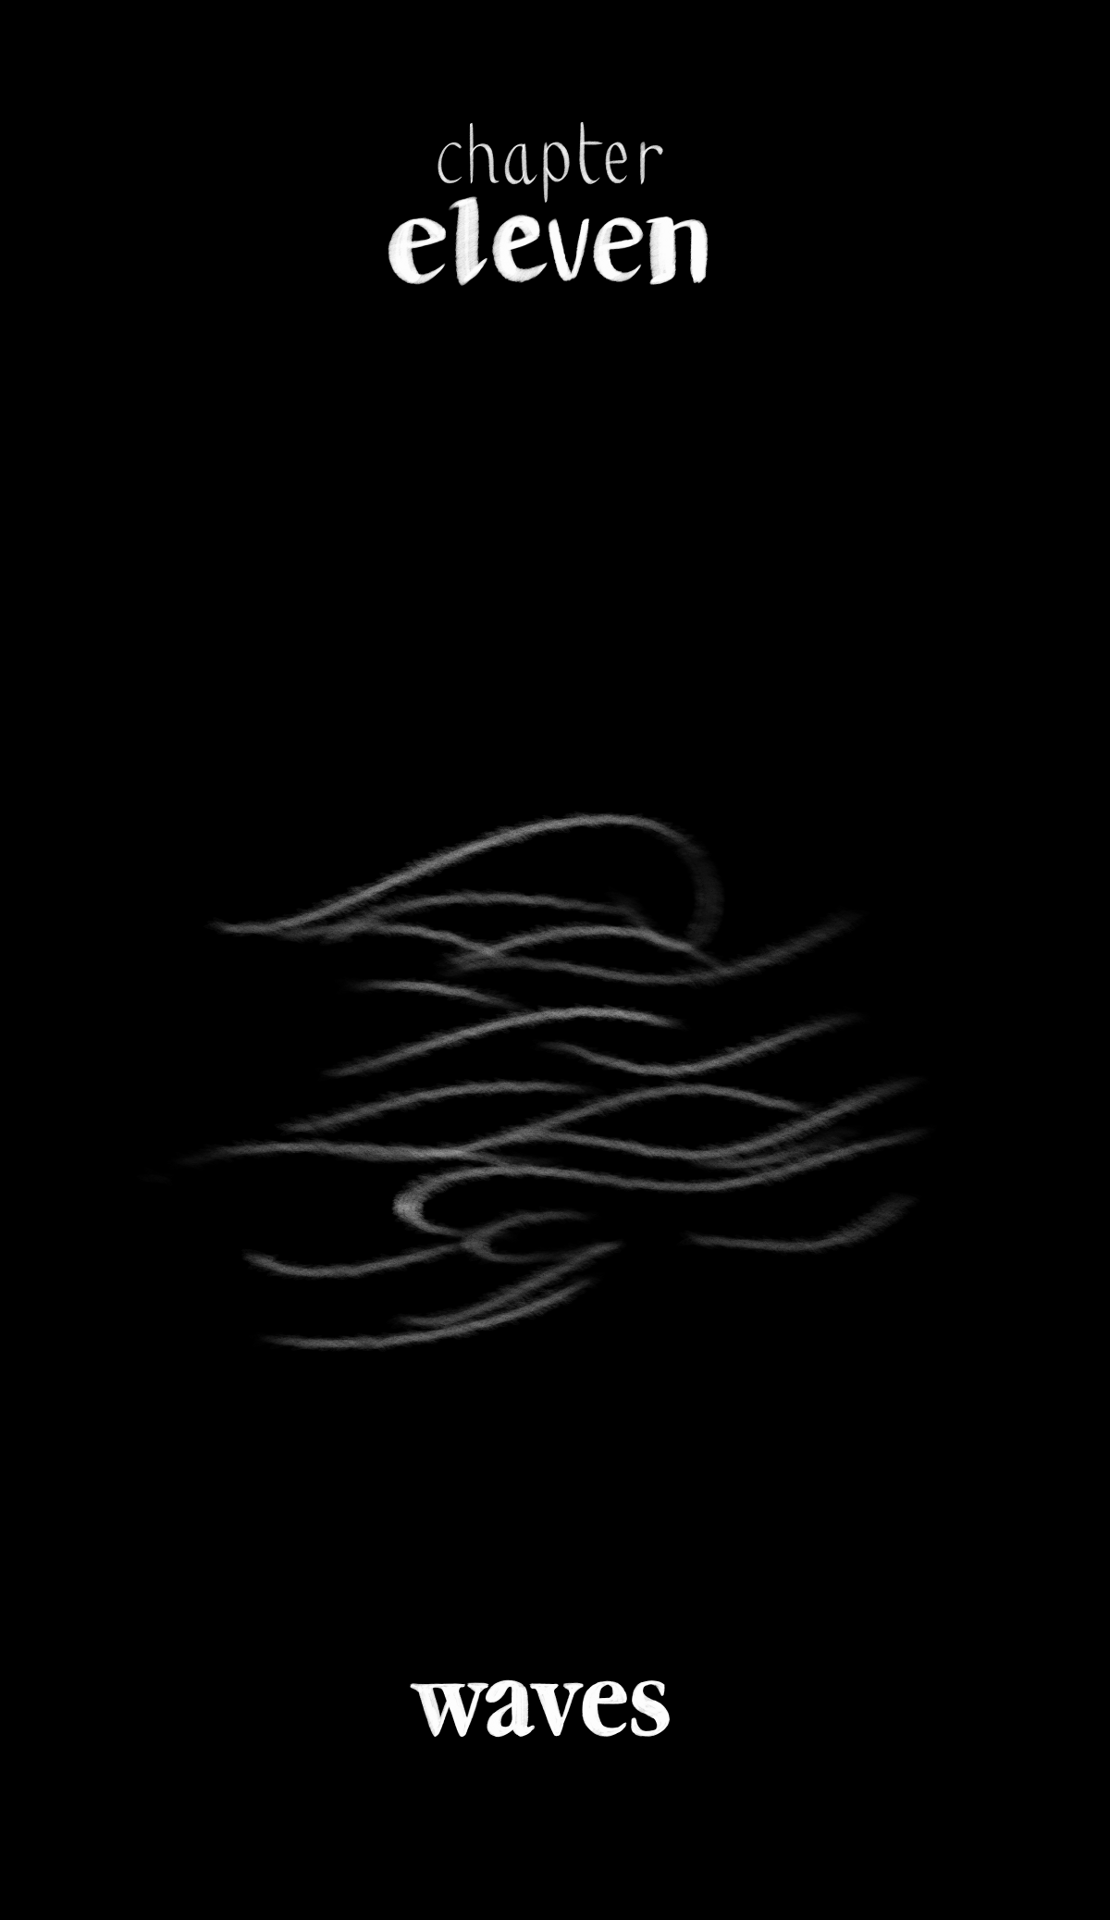 The Gifts of Darkness - Chapter 11: Waves